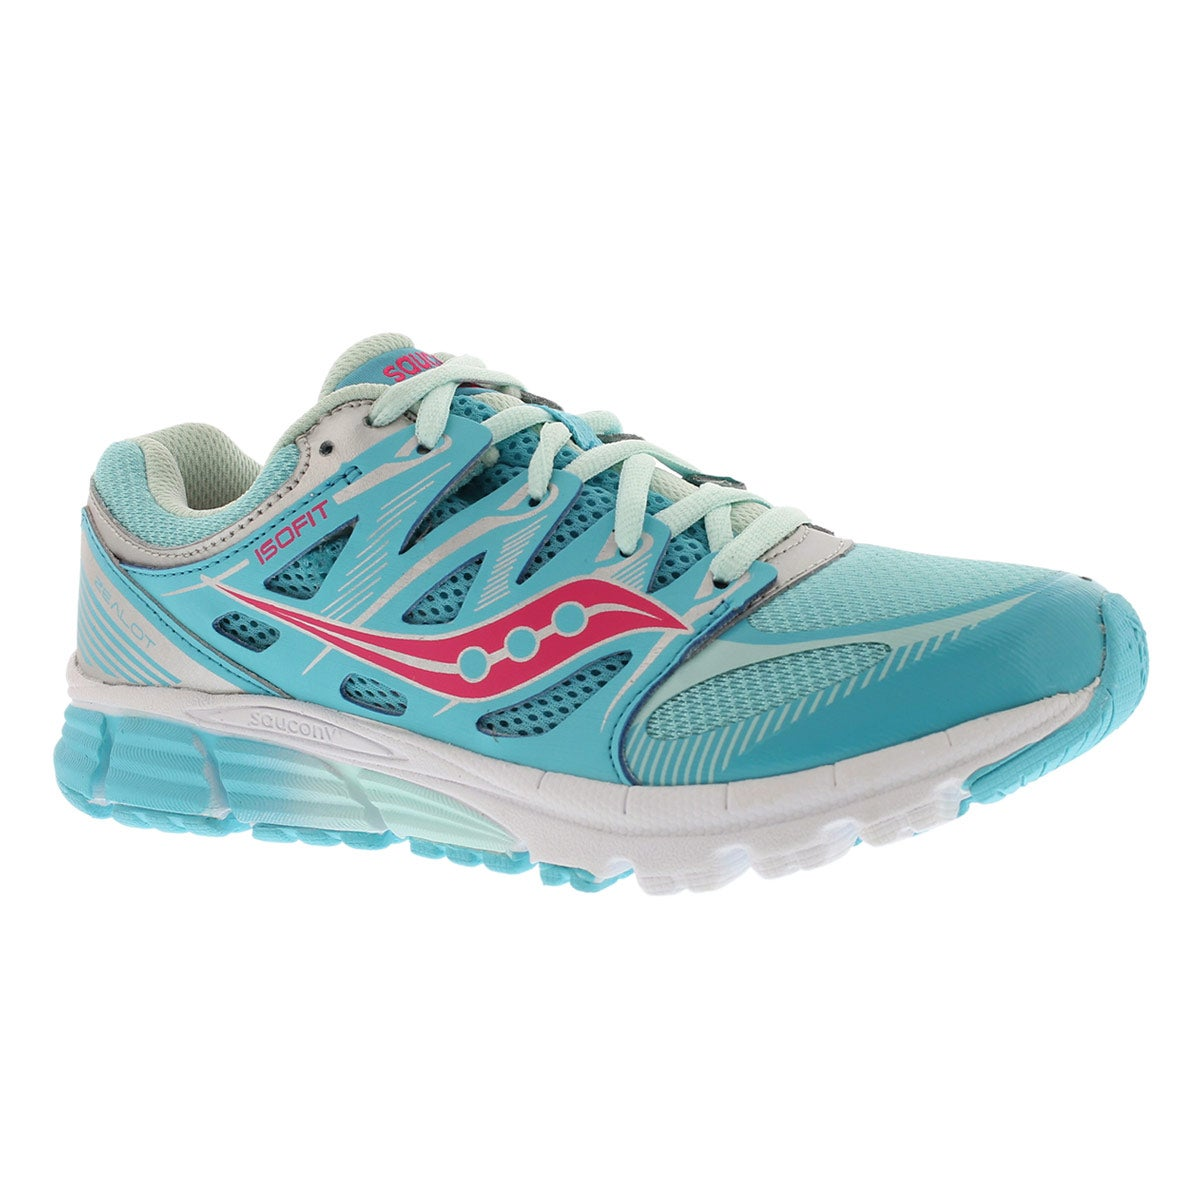 Girls' ZEALOT turquoise/silver running shoes